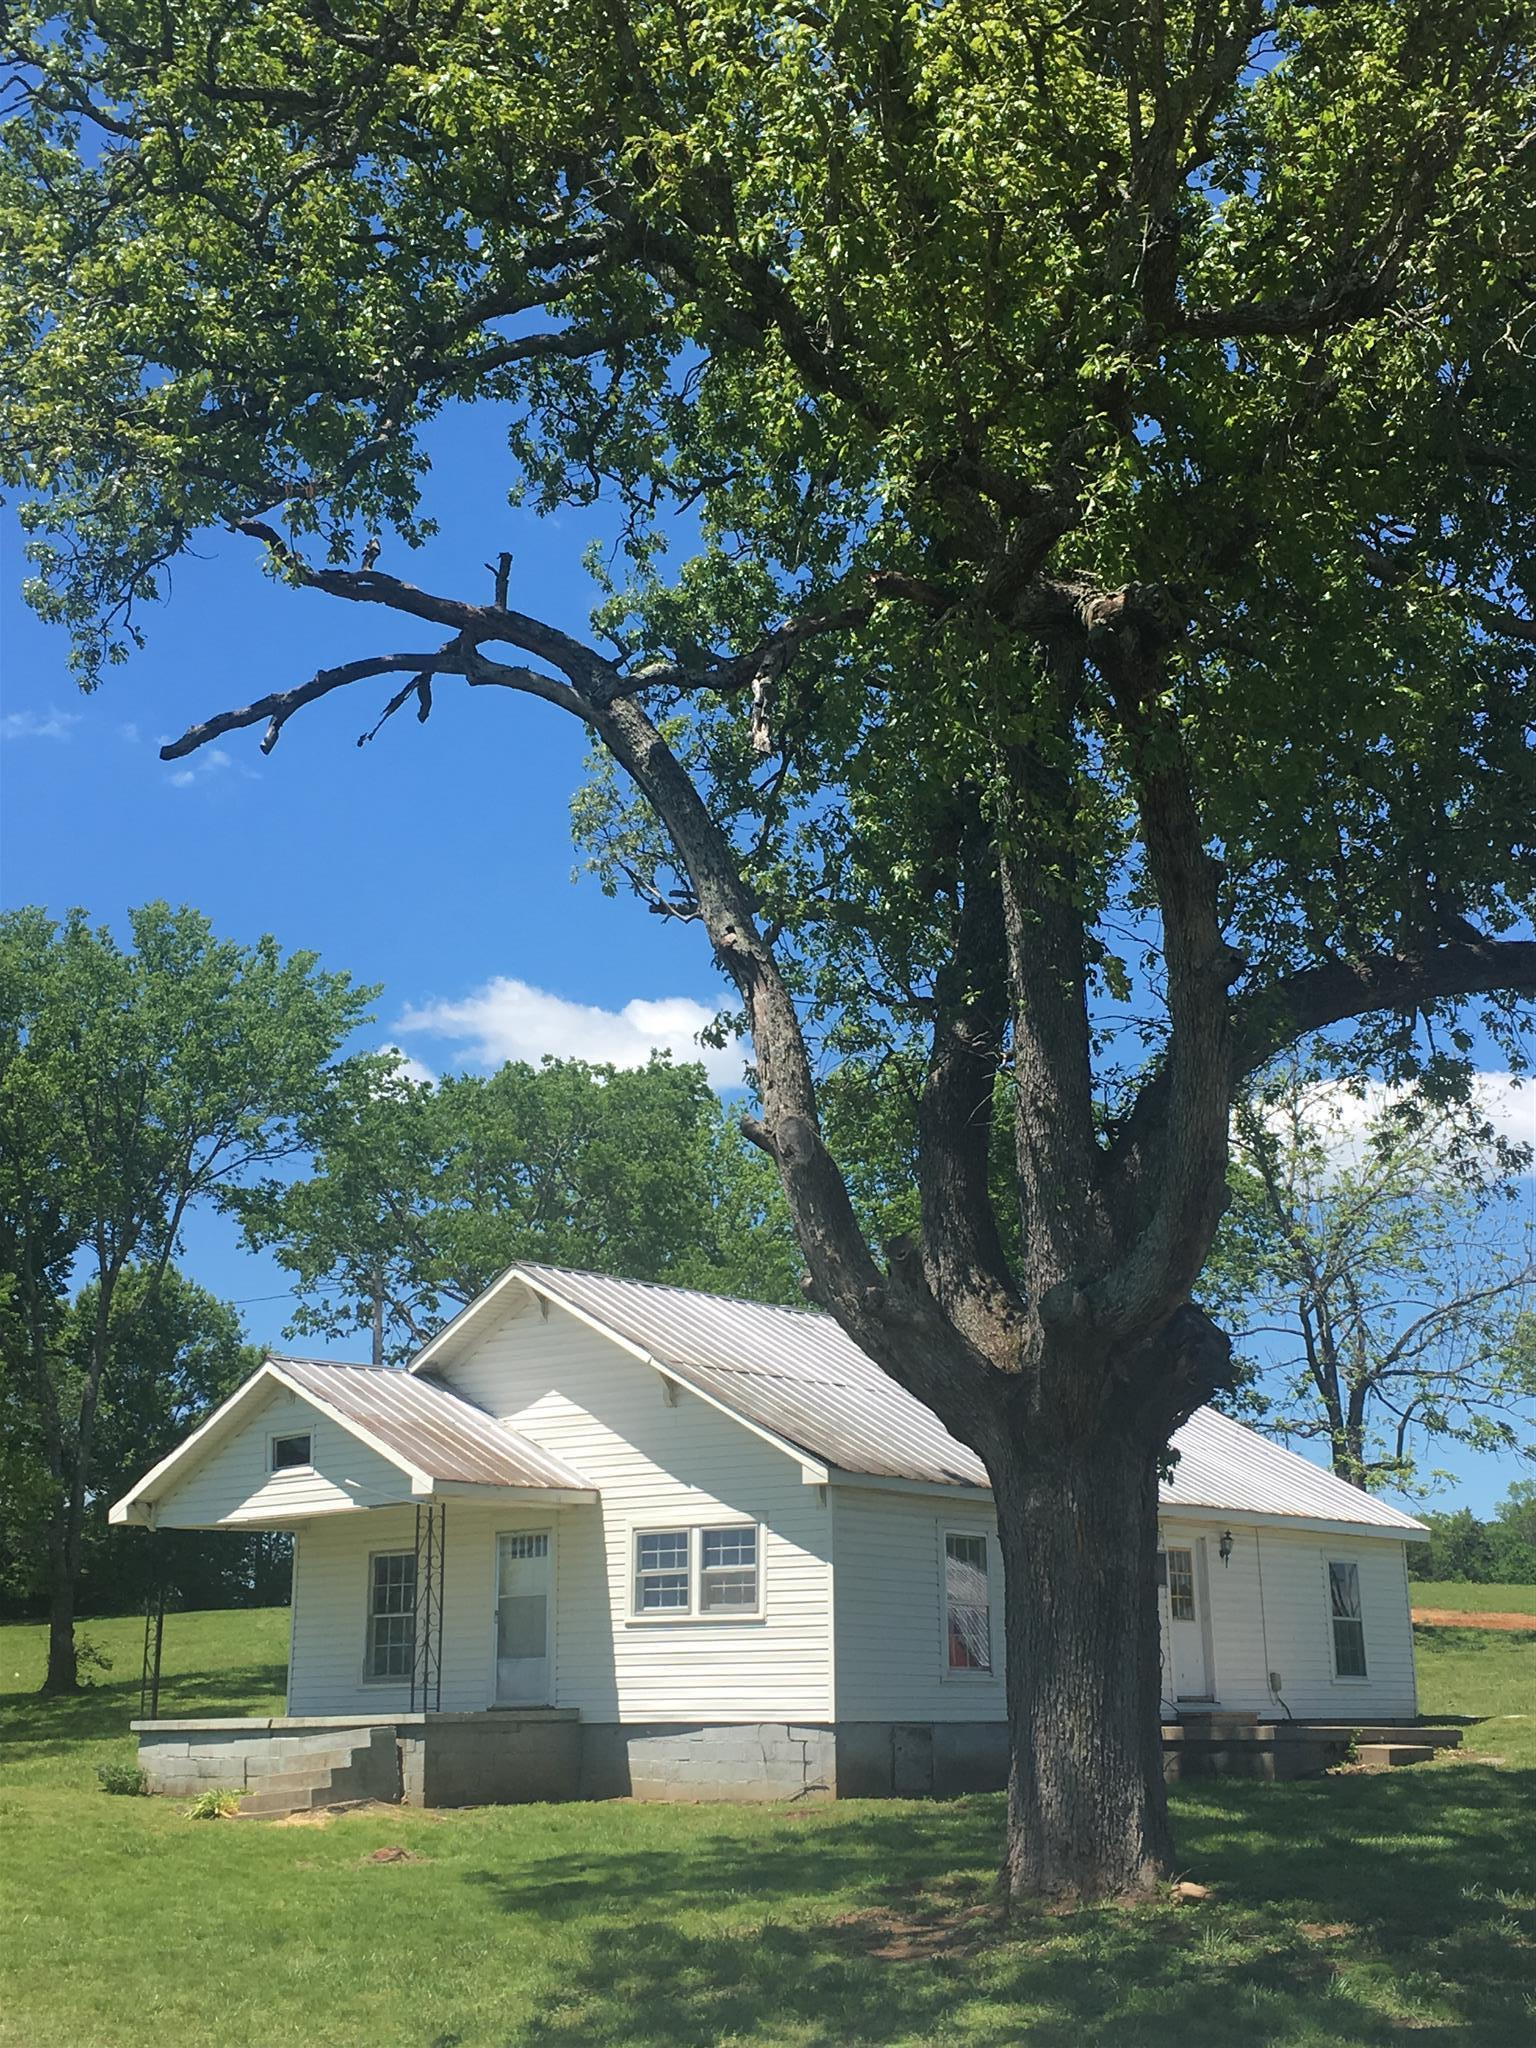 10021 Stewarts Ferry Pike, Lebanon in Wilson County County, TN 37090 Home for Sale